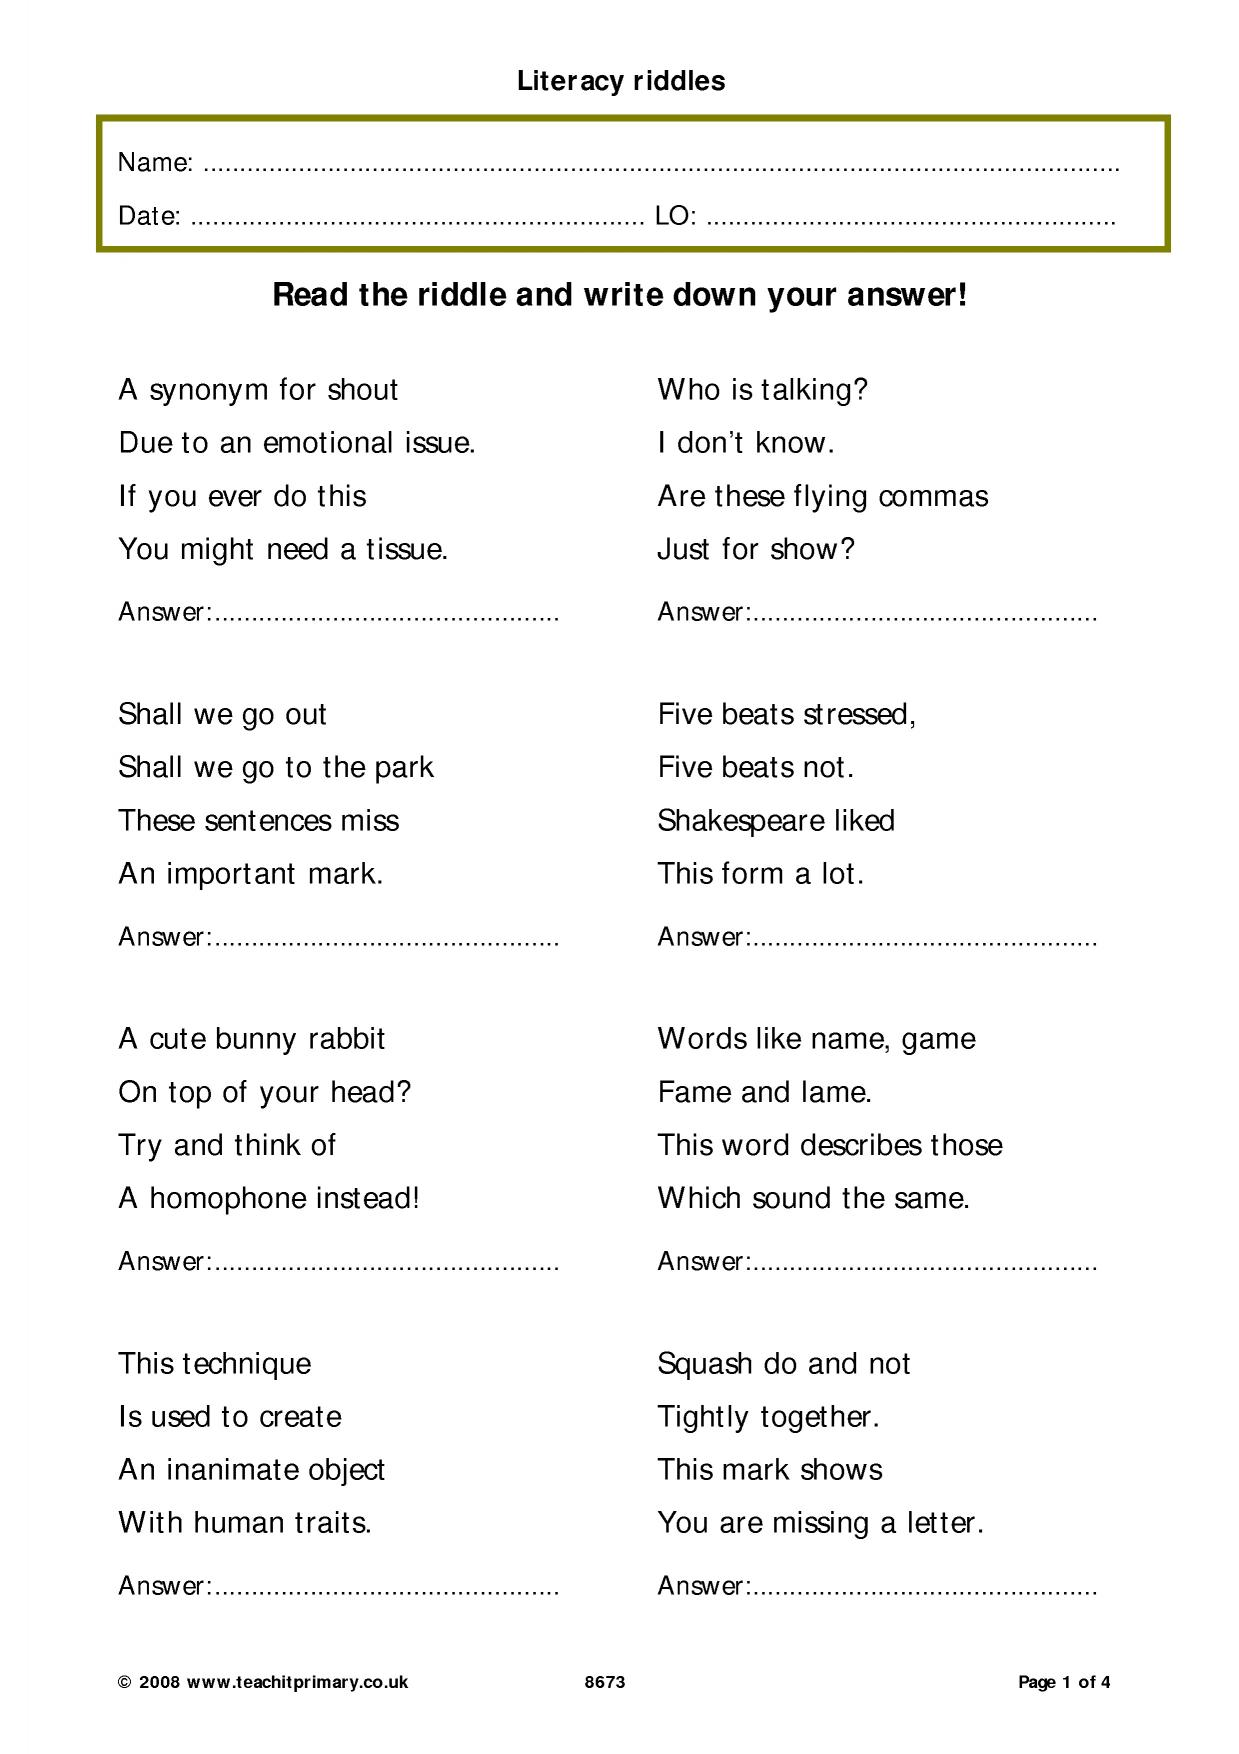 Literacy Related Riddles